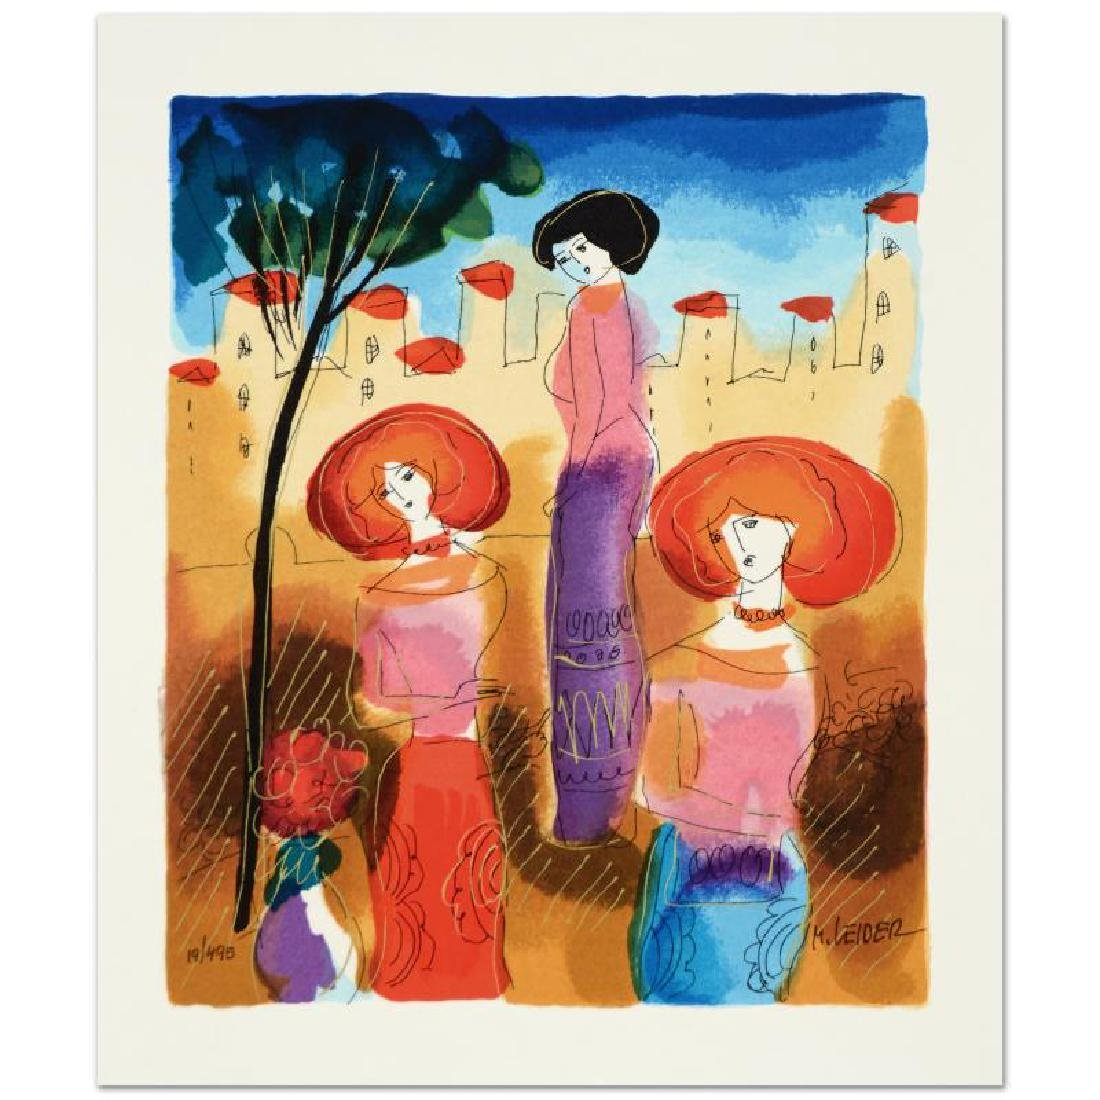 The Meeting Limited Edition Serigraph by Moshe Leider